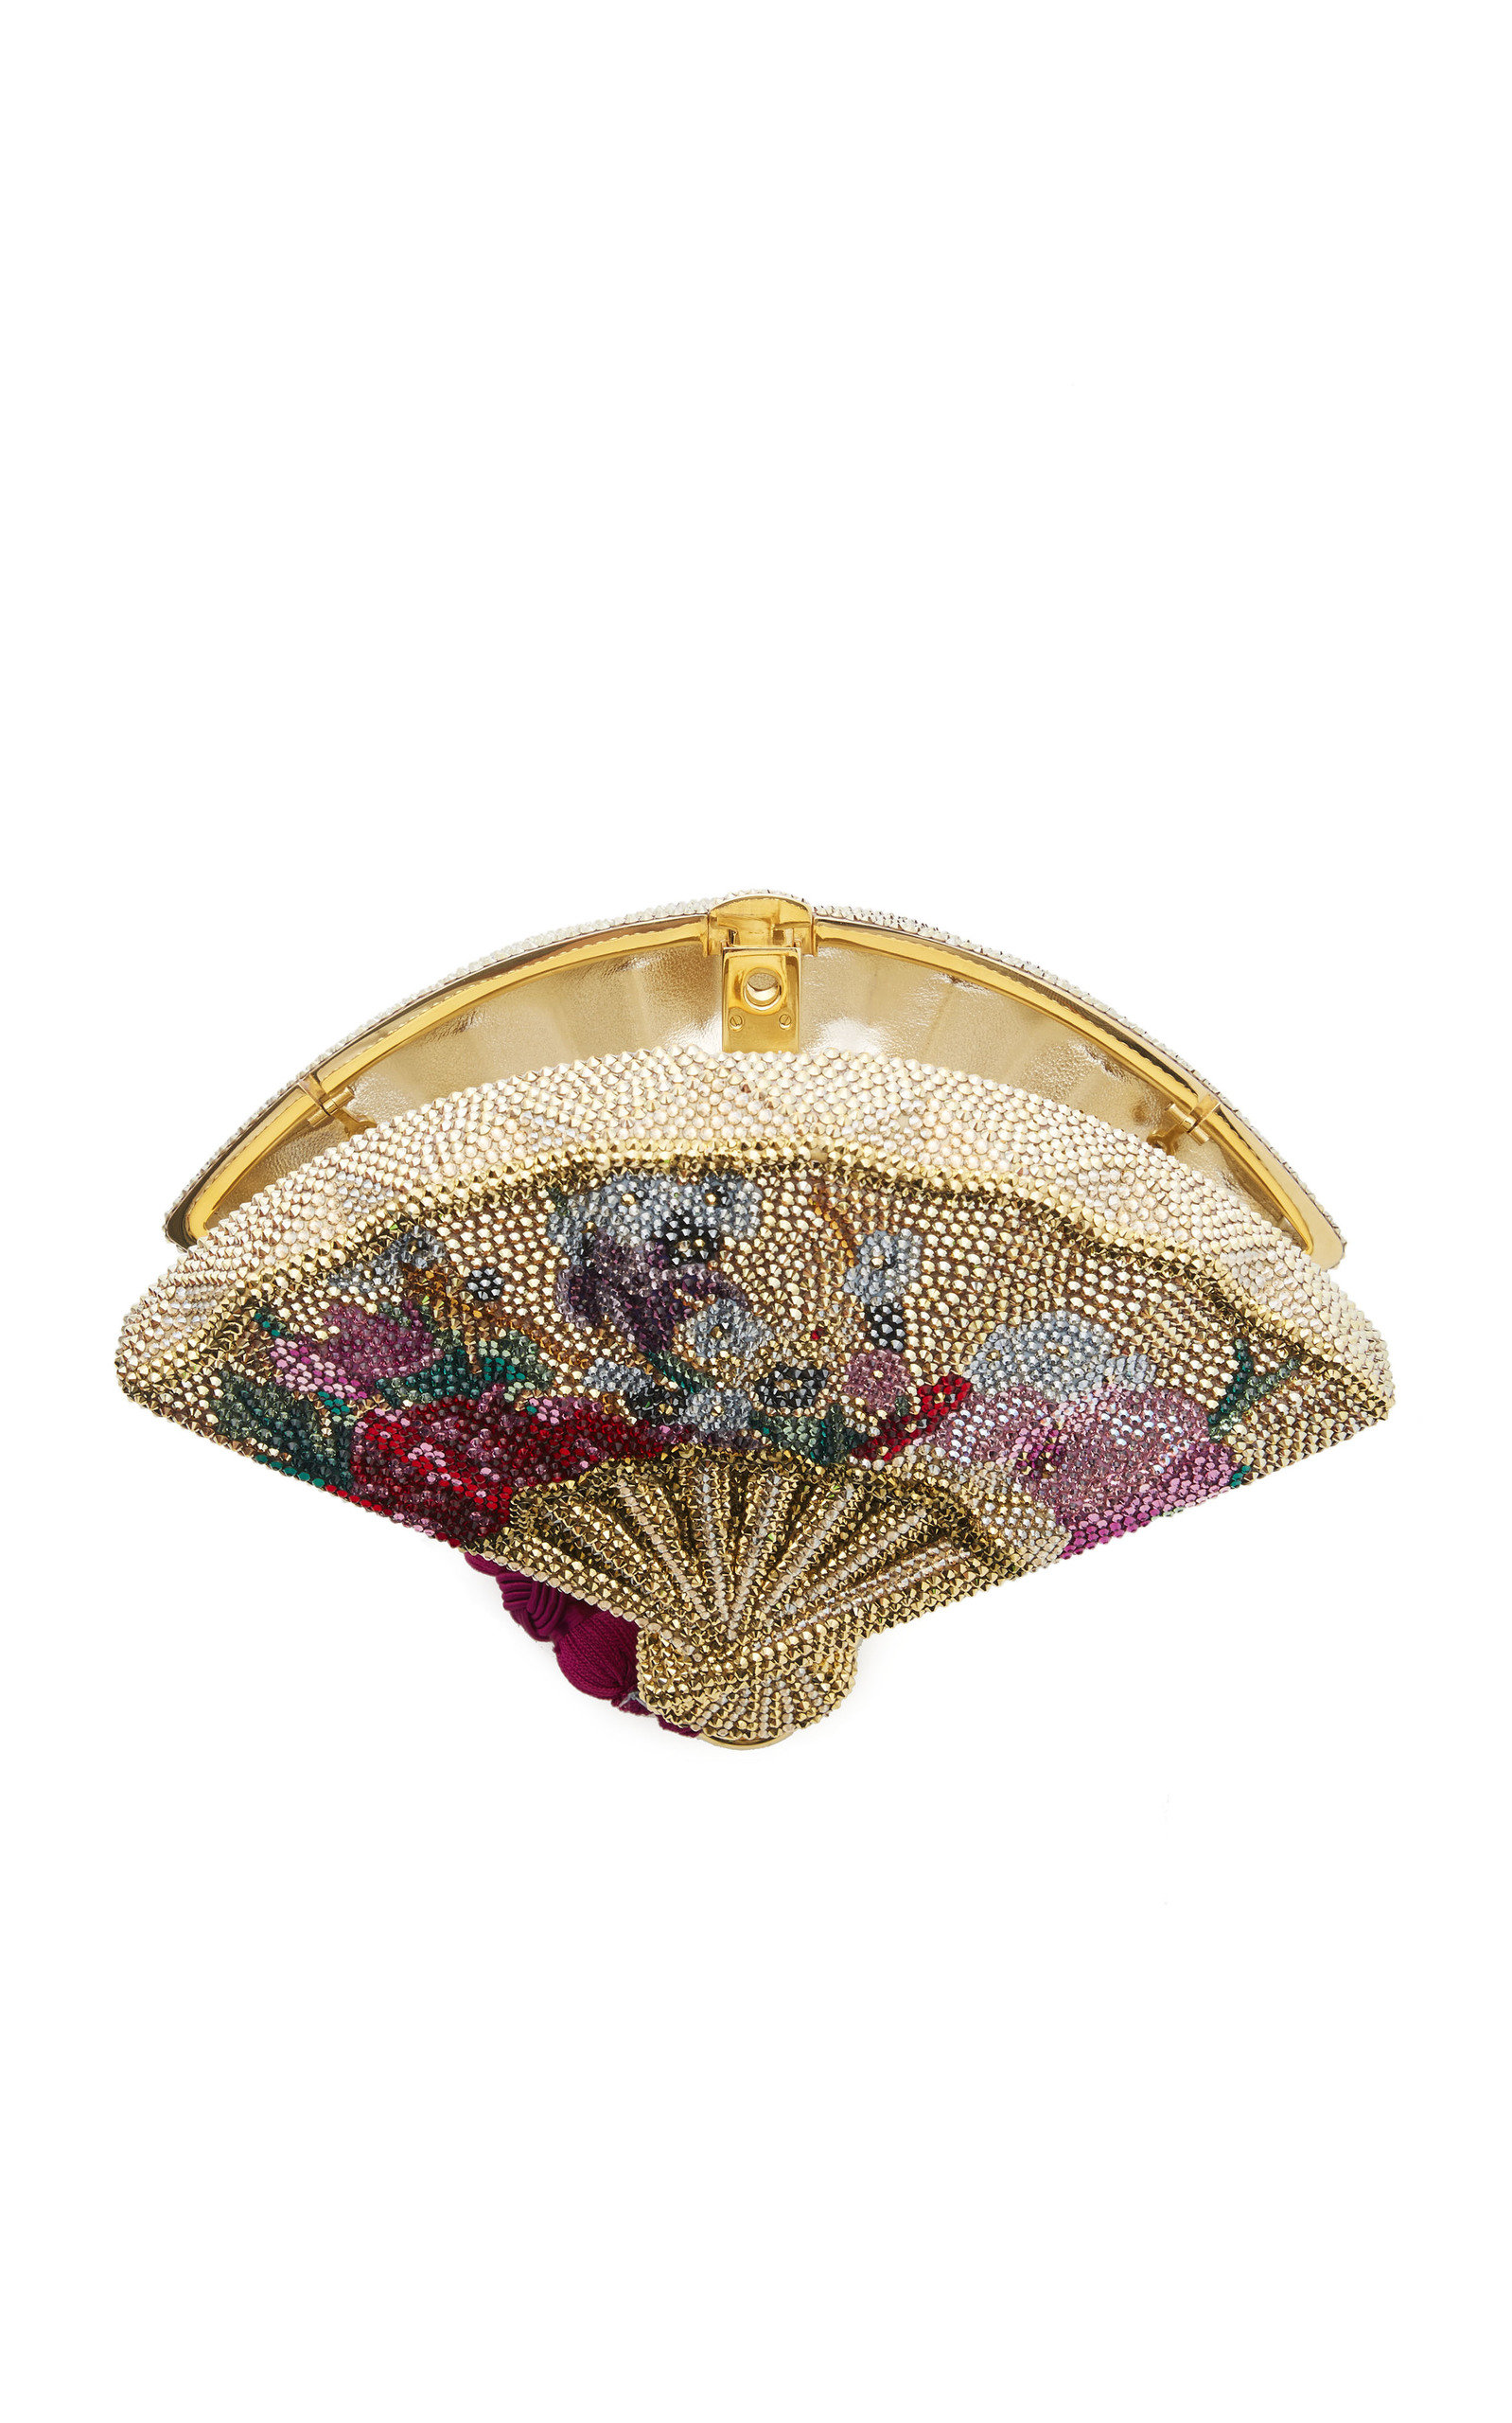 Gion Fan Clutch Judith Leiber